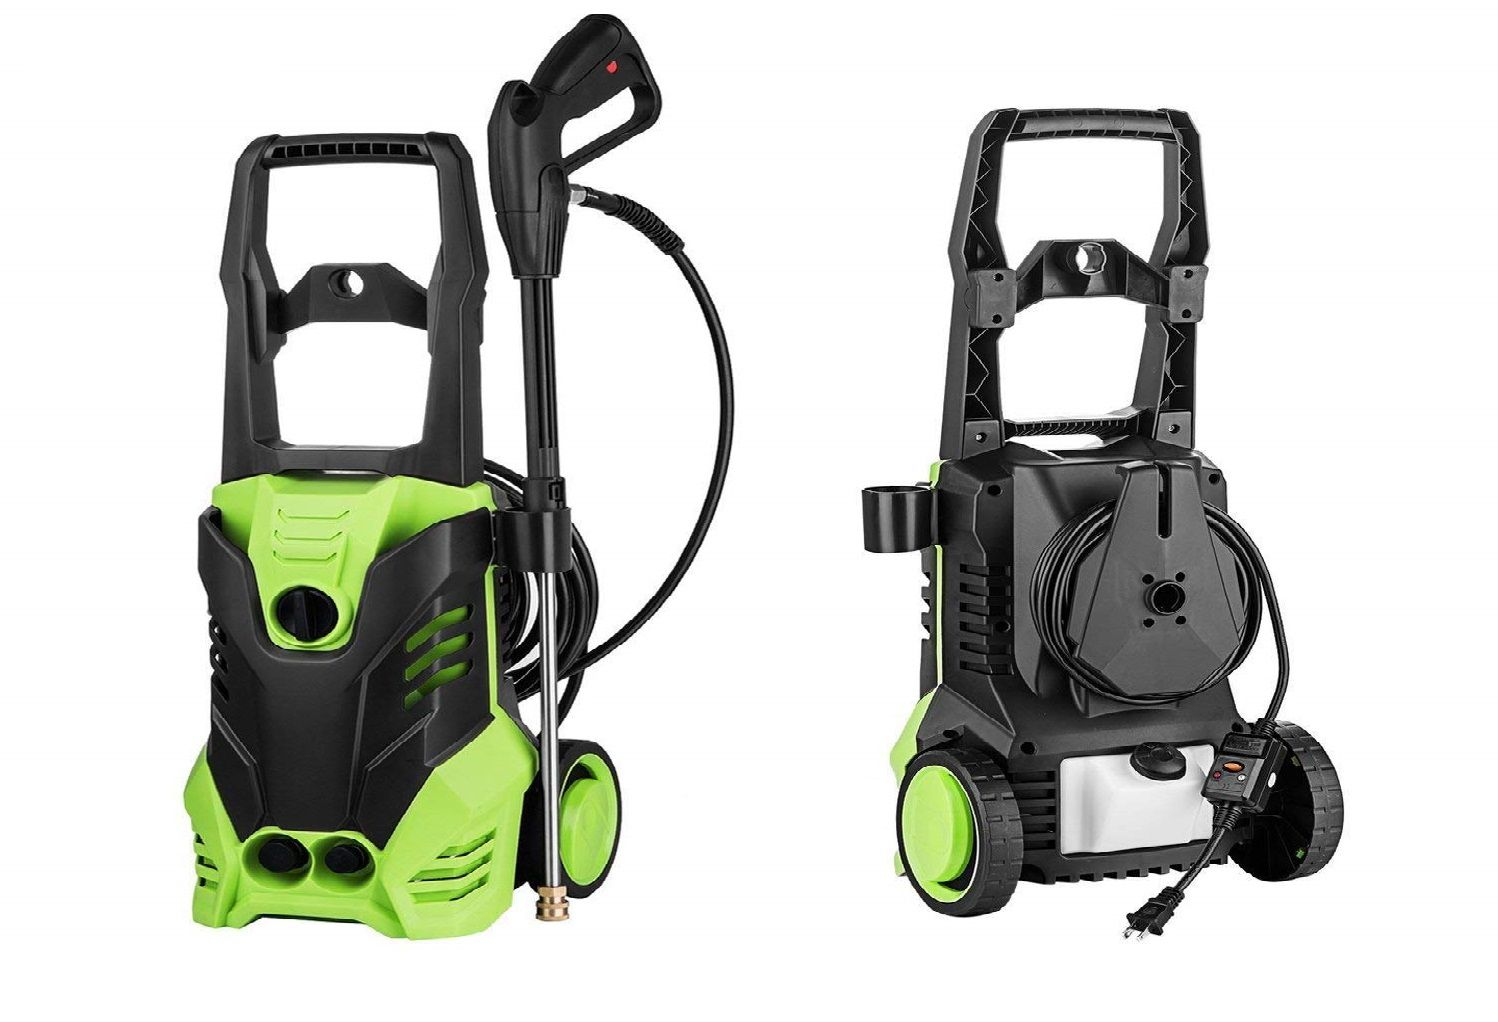 Billti 3000 PSI Electric Power Washer Review